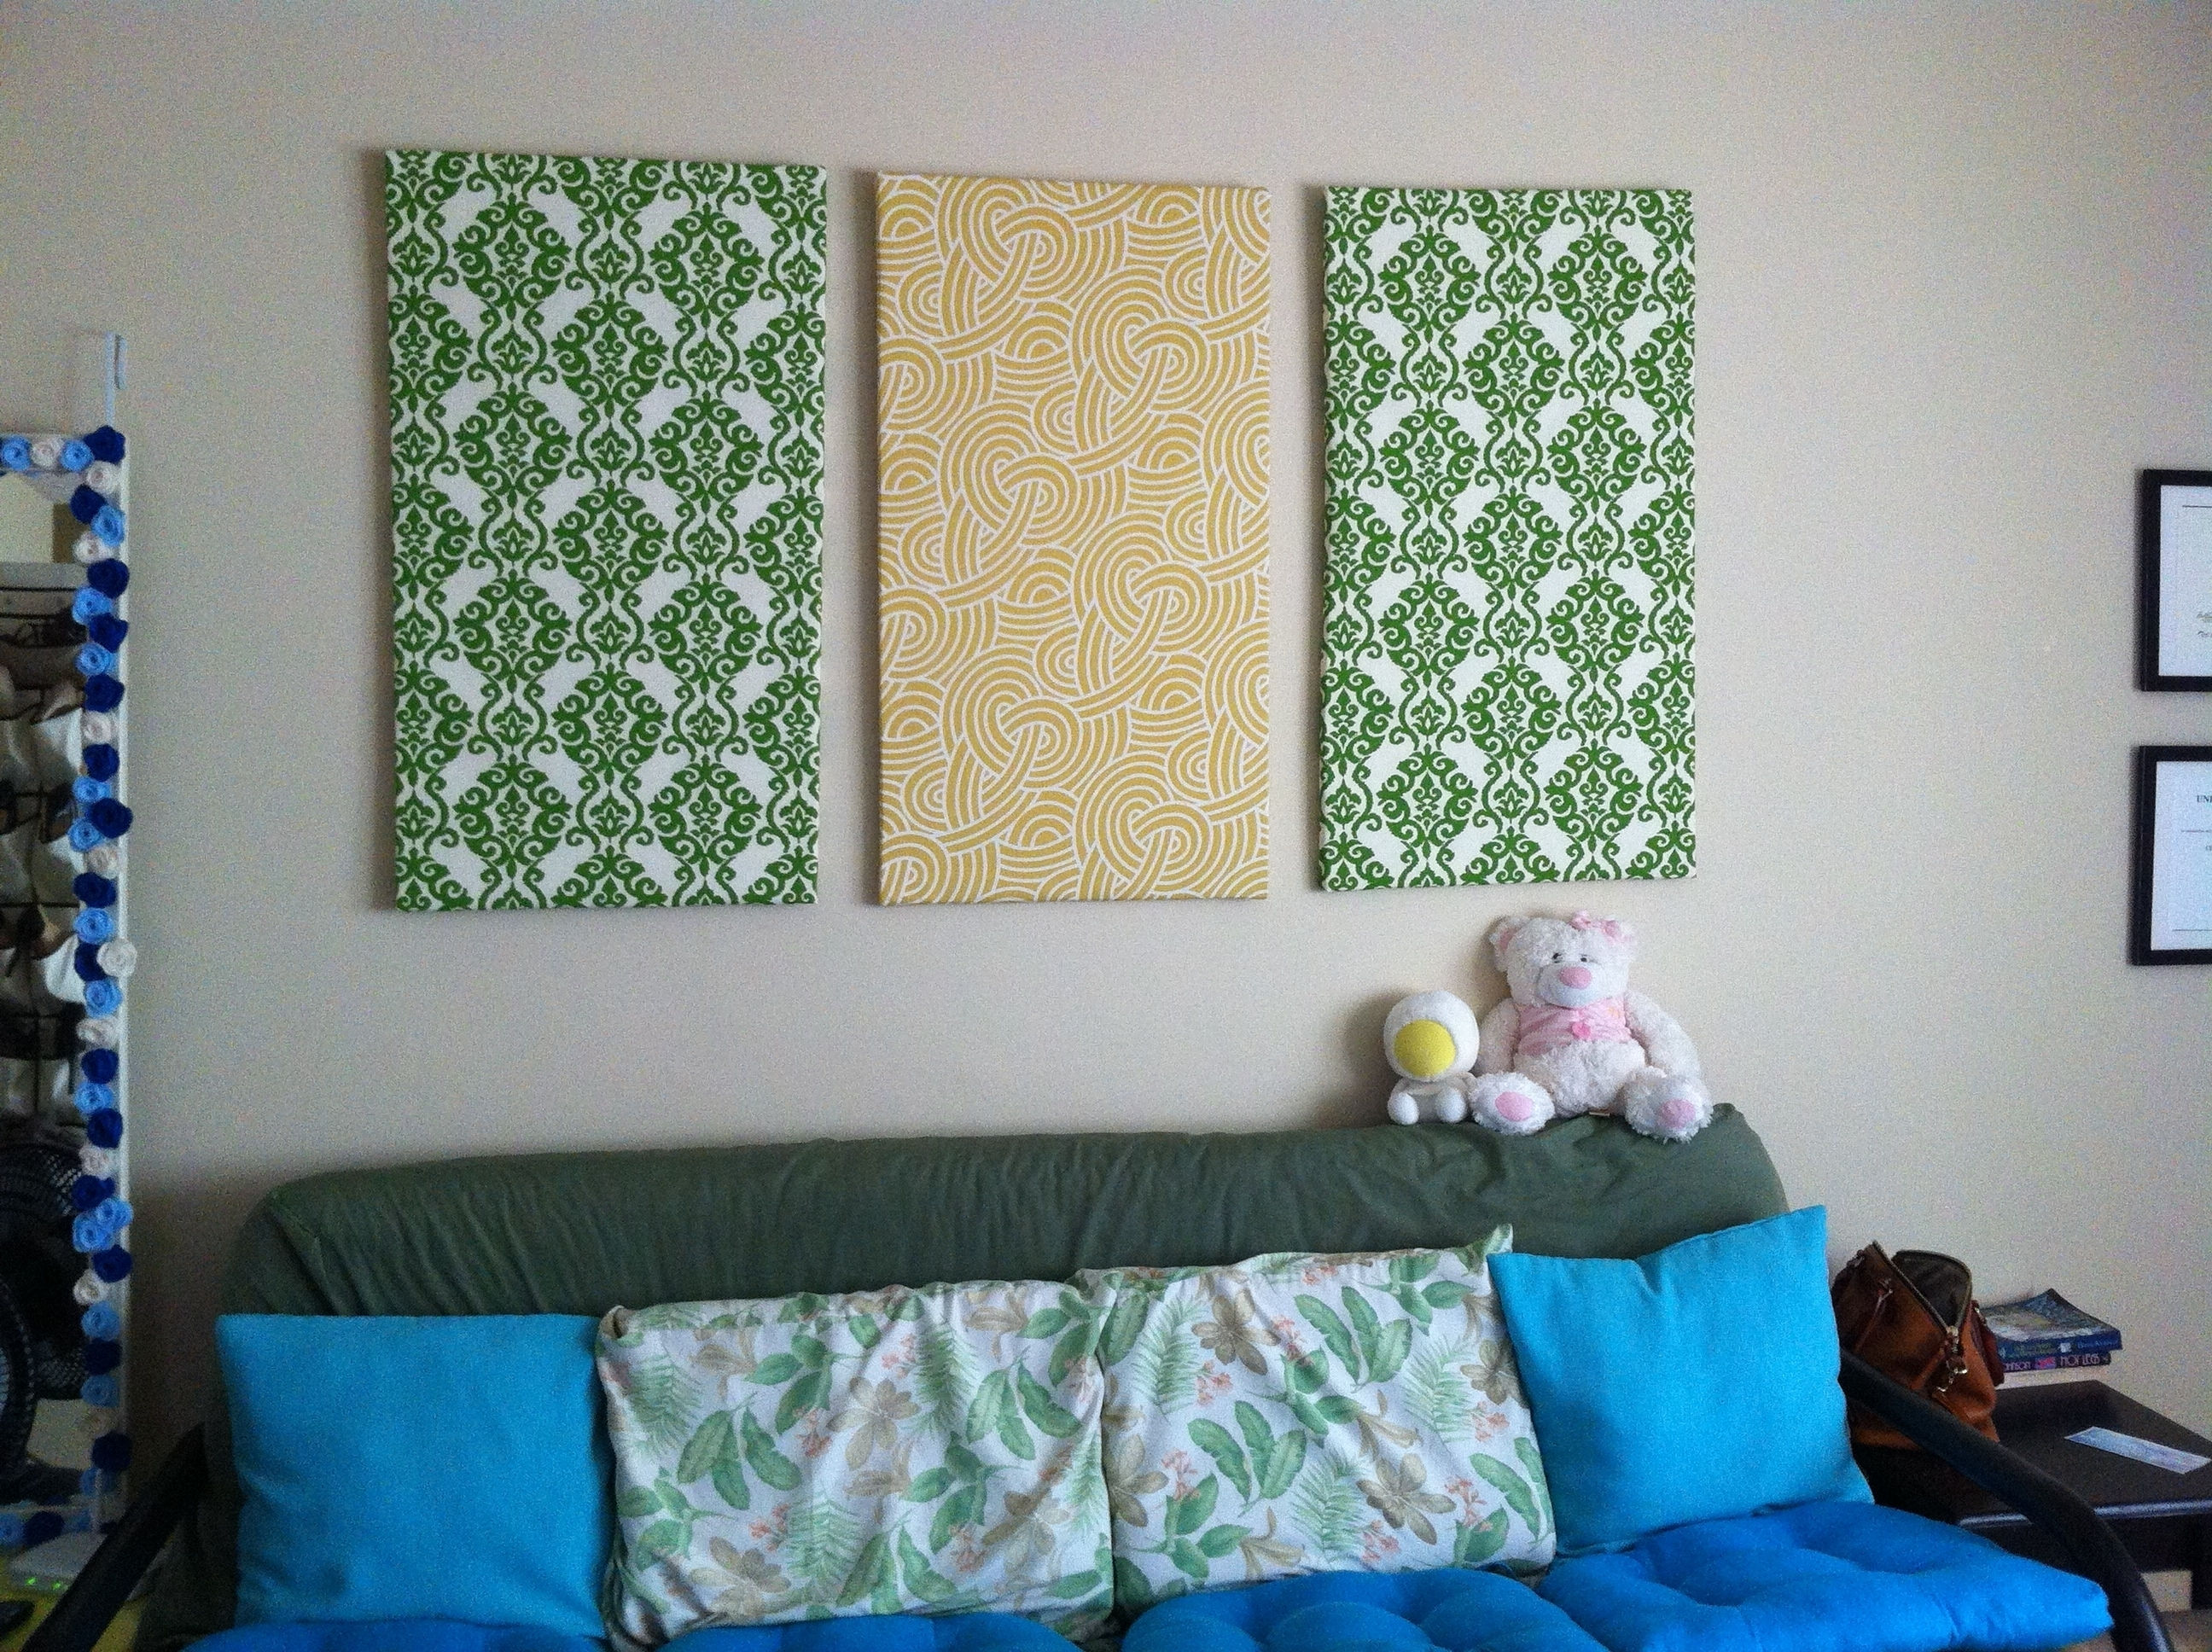 Some Kind Diy Wall Art To Decorating Homes — The Home Redesign Regarding Most Popular High End Fabric Wall Art (View 14 of 15)